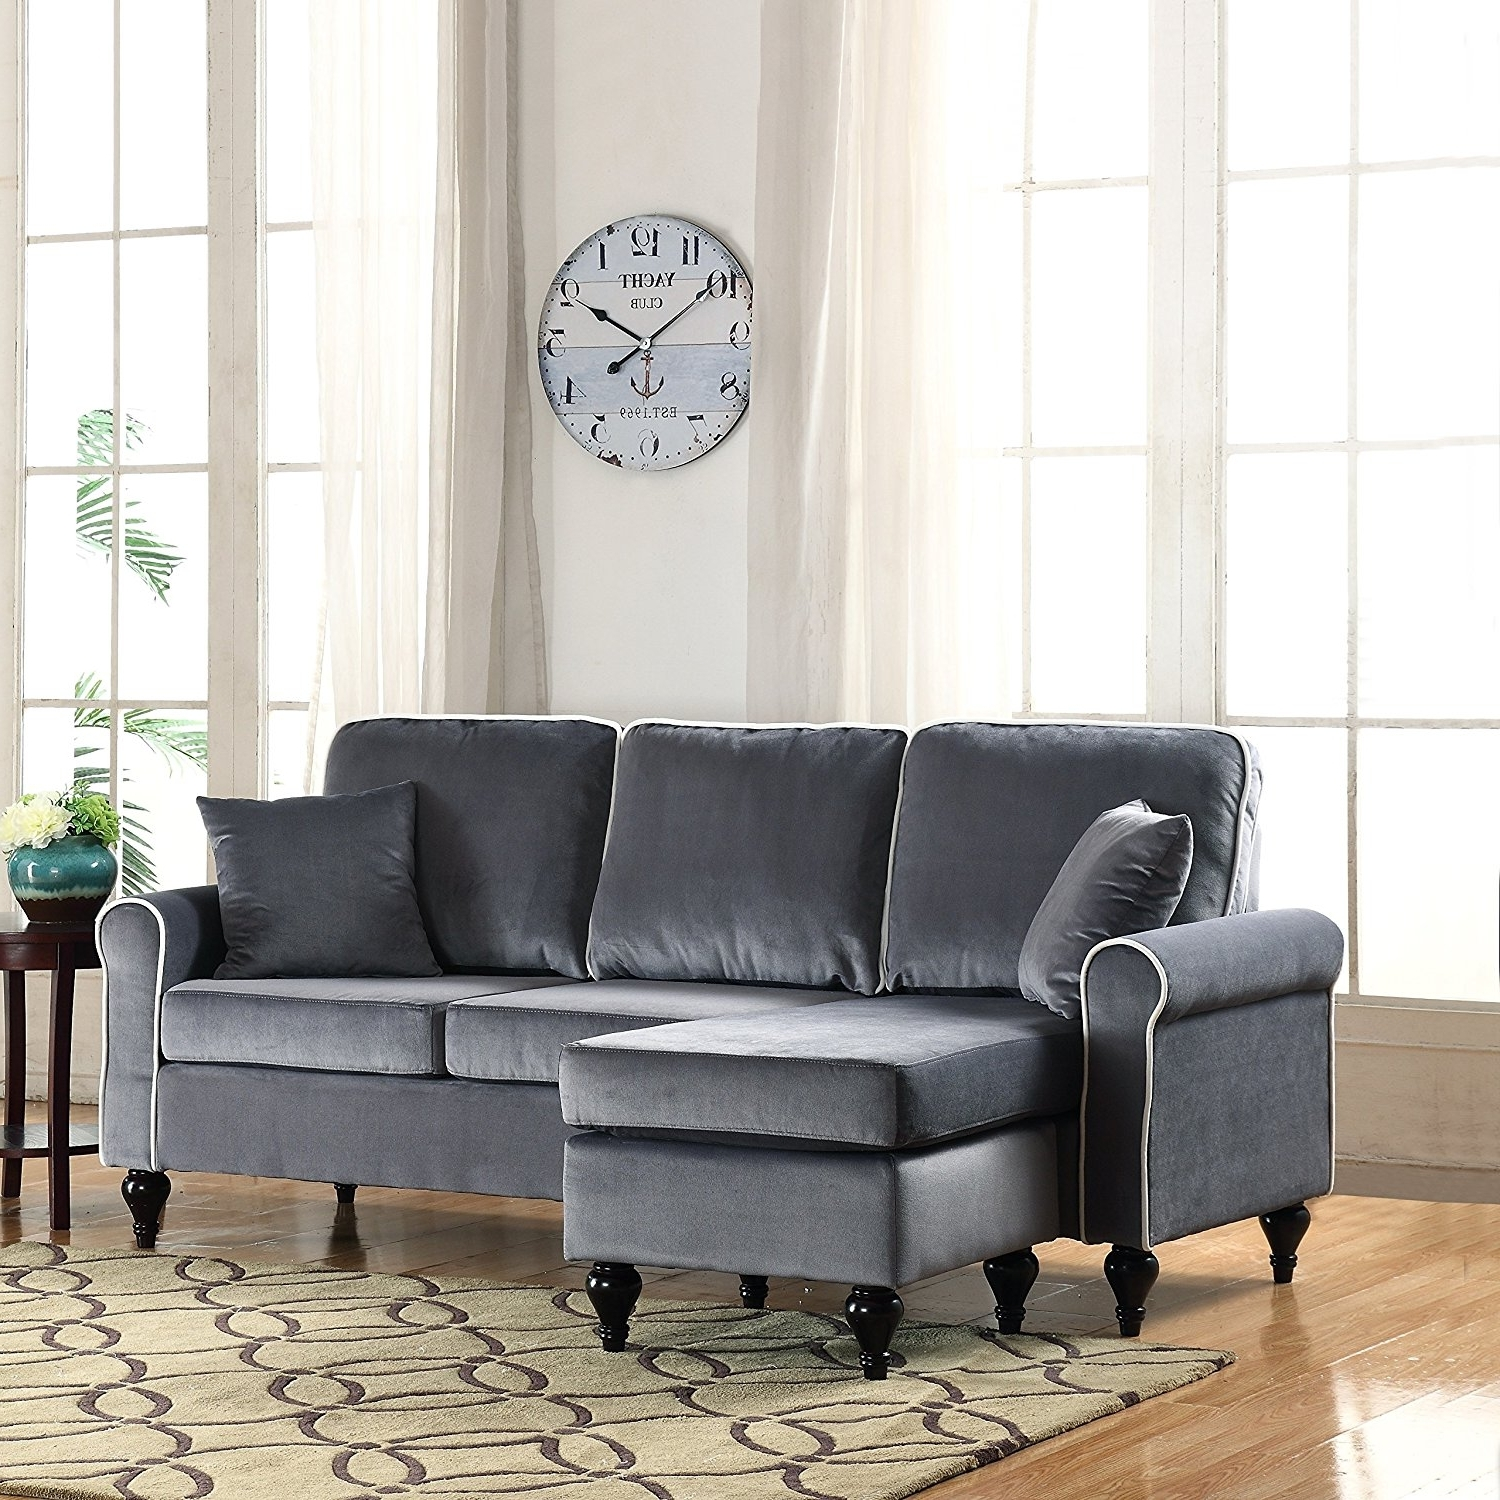 Amazon: Classic And Traditional Small Space Velvet Sectional With Regard To Popular Reversible Chaises (View 12 of 15)